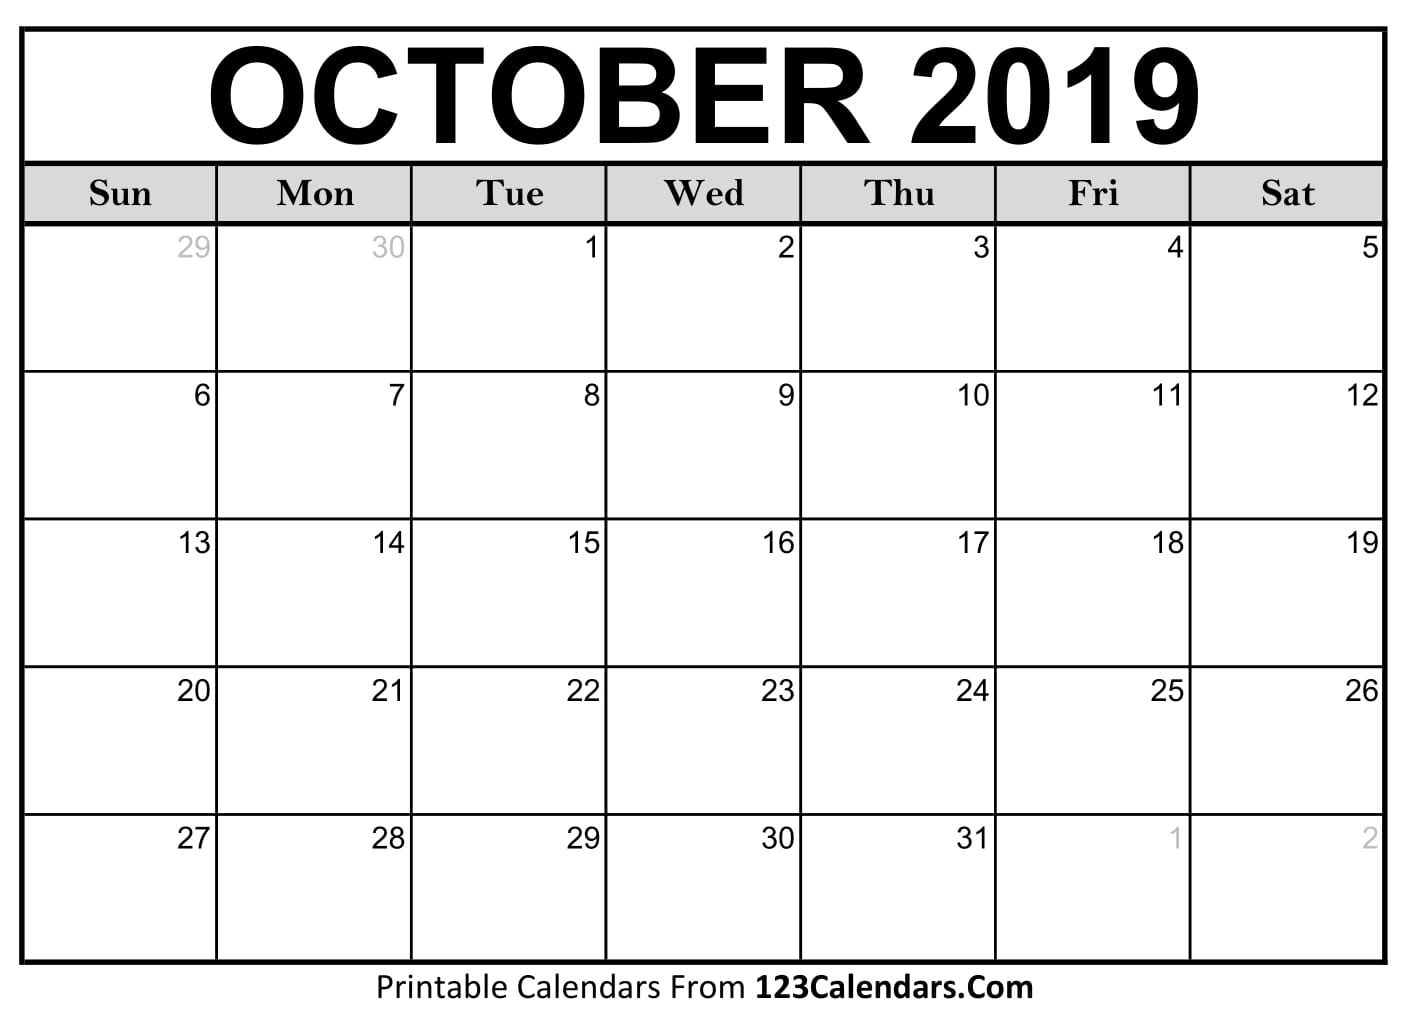 graphic regarding October Calendar Printable titled Oct 2019 Printable Calendar